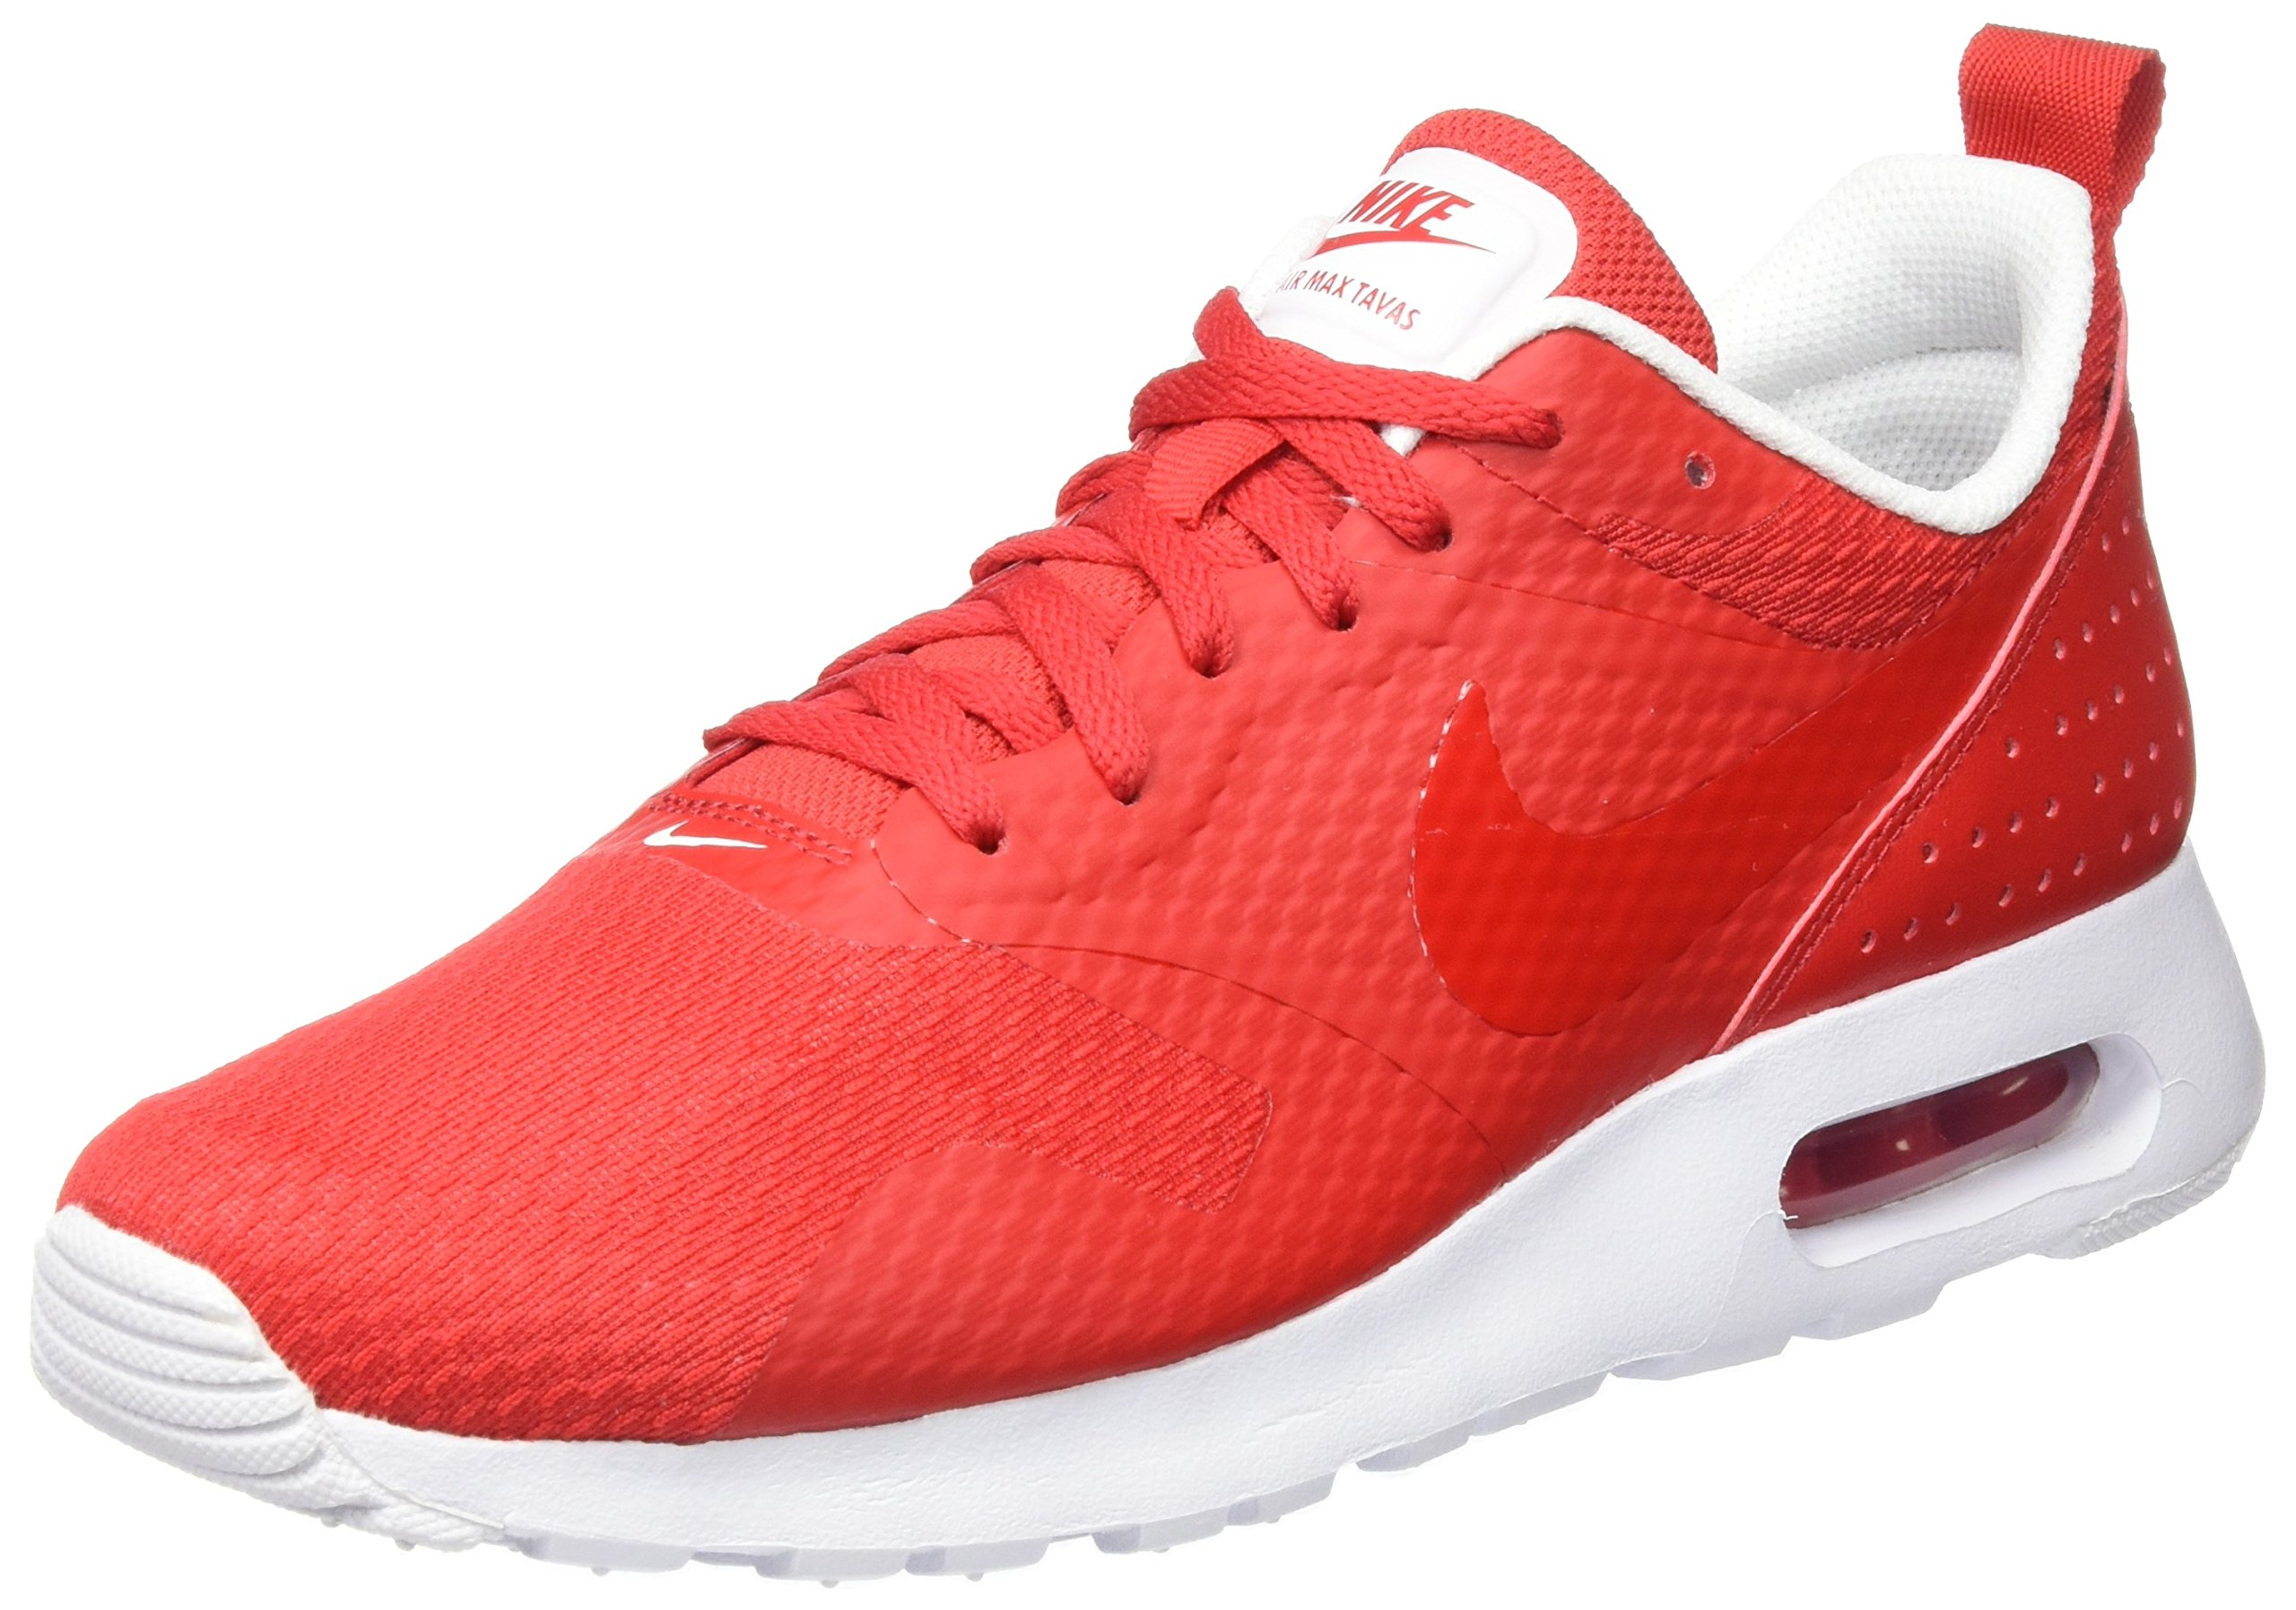 the best attitude 1cbe1 cf501 Galleon - NIKE Air Max Tavas, Men s Low-Top, Red (University Red University  Red White), 12 UK